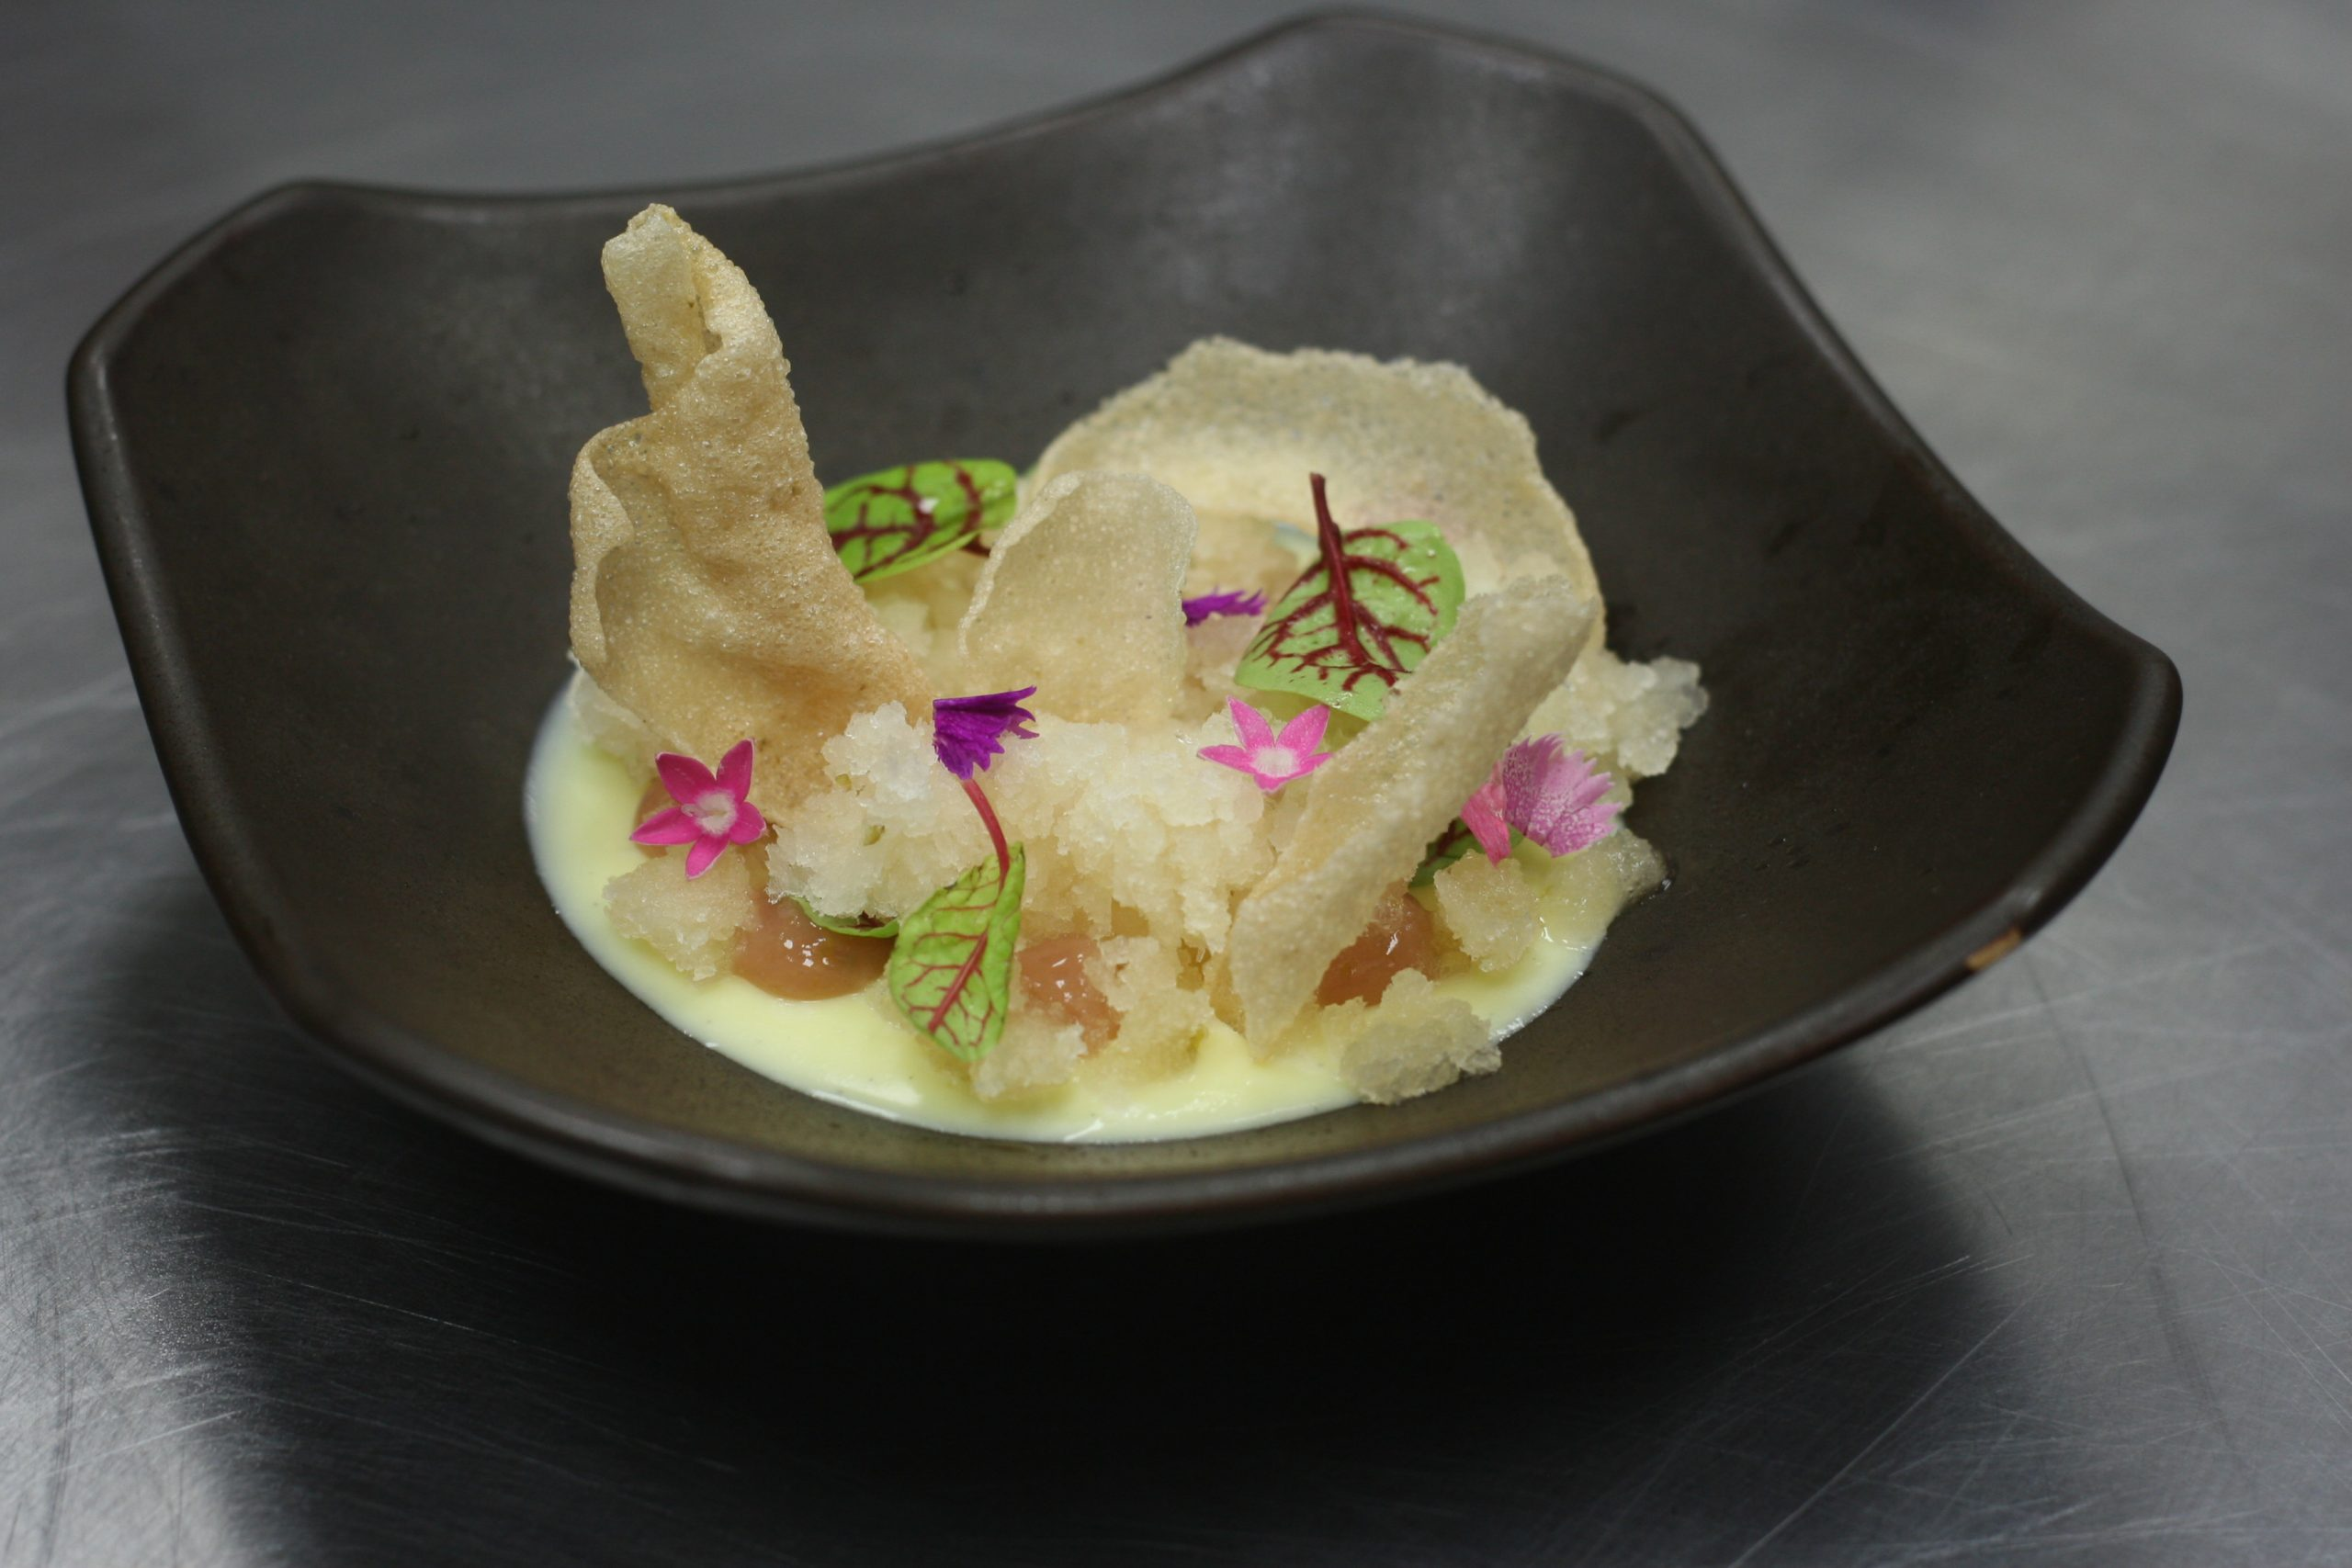 """In preparing a """"pre-dessert,"""" Hanbun chef David Park started with a white chocolate cremeux (a French custard) and then added yuzu kosho to every other element."""